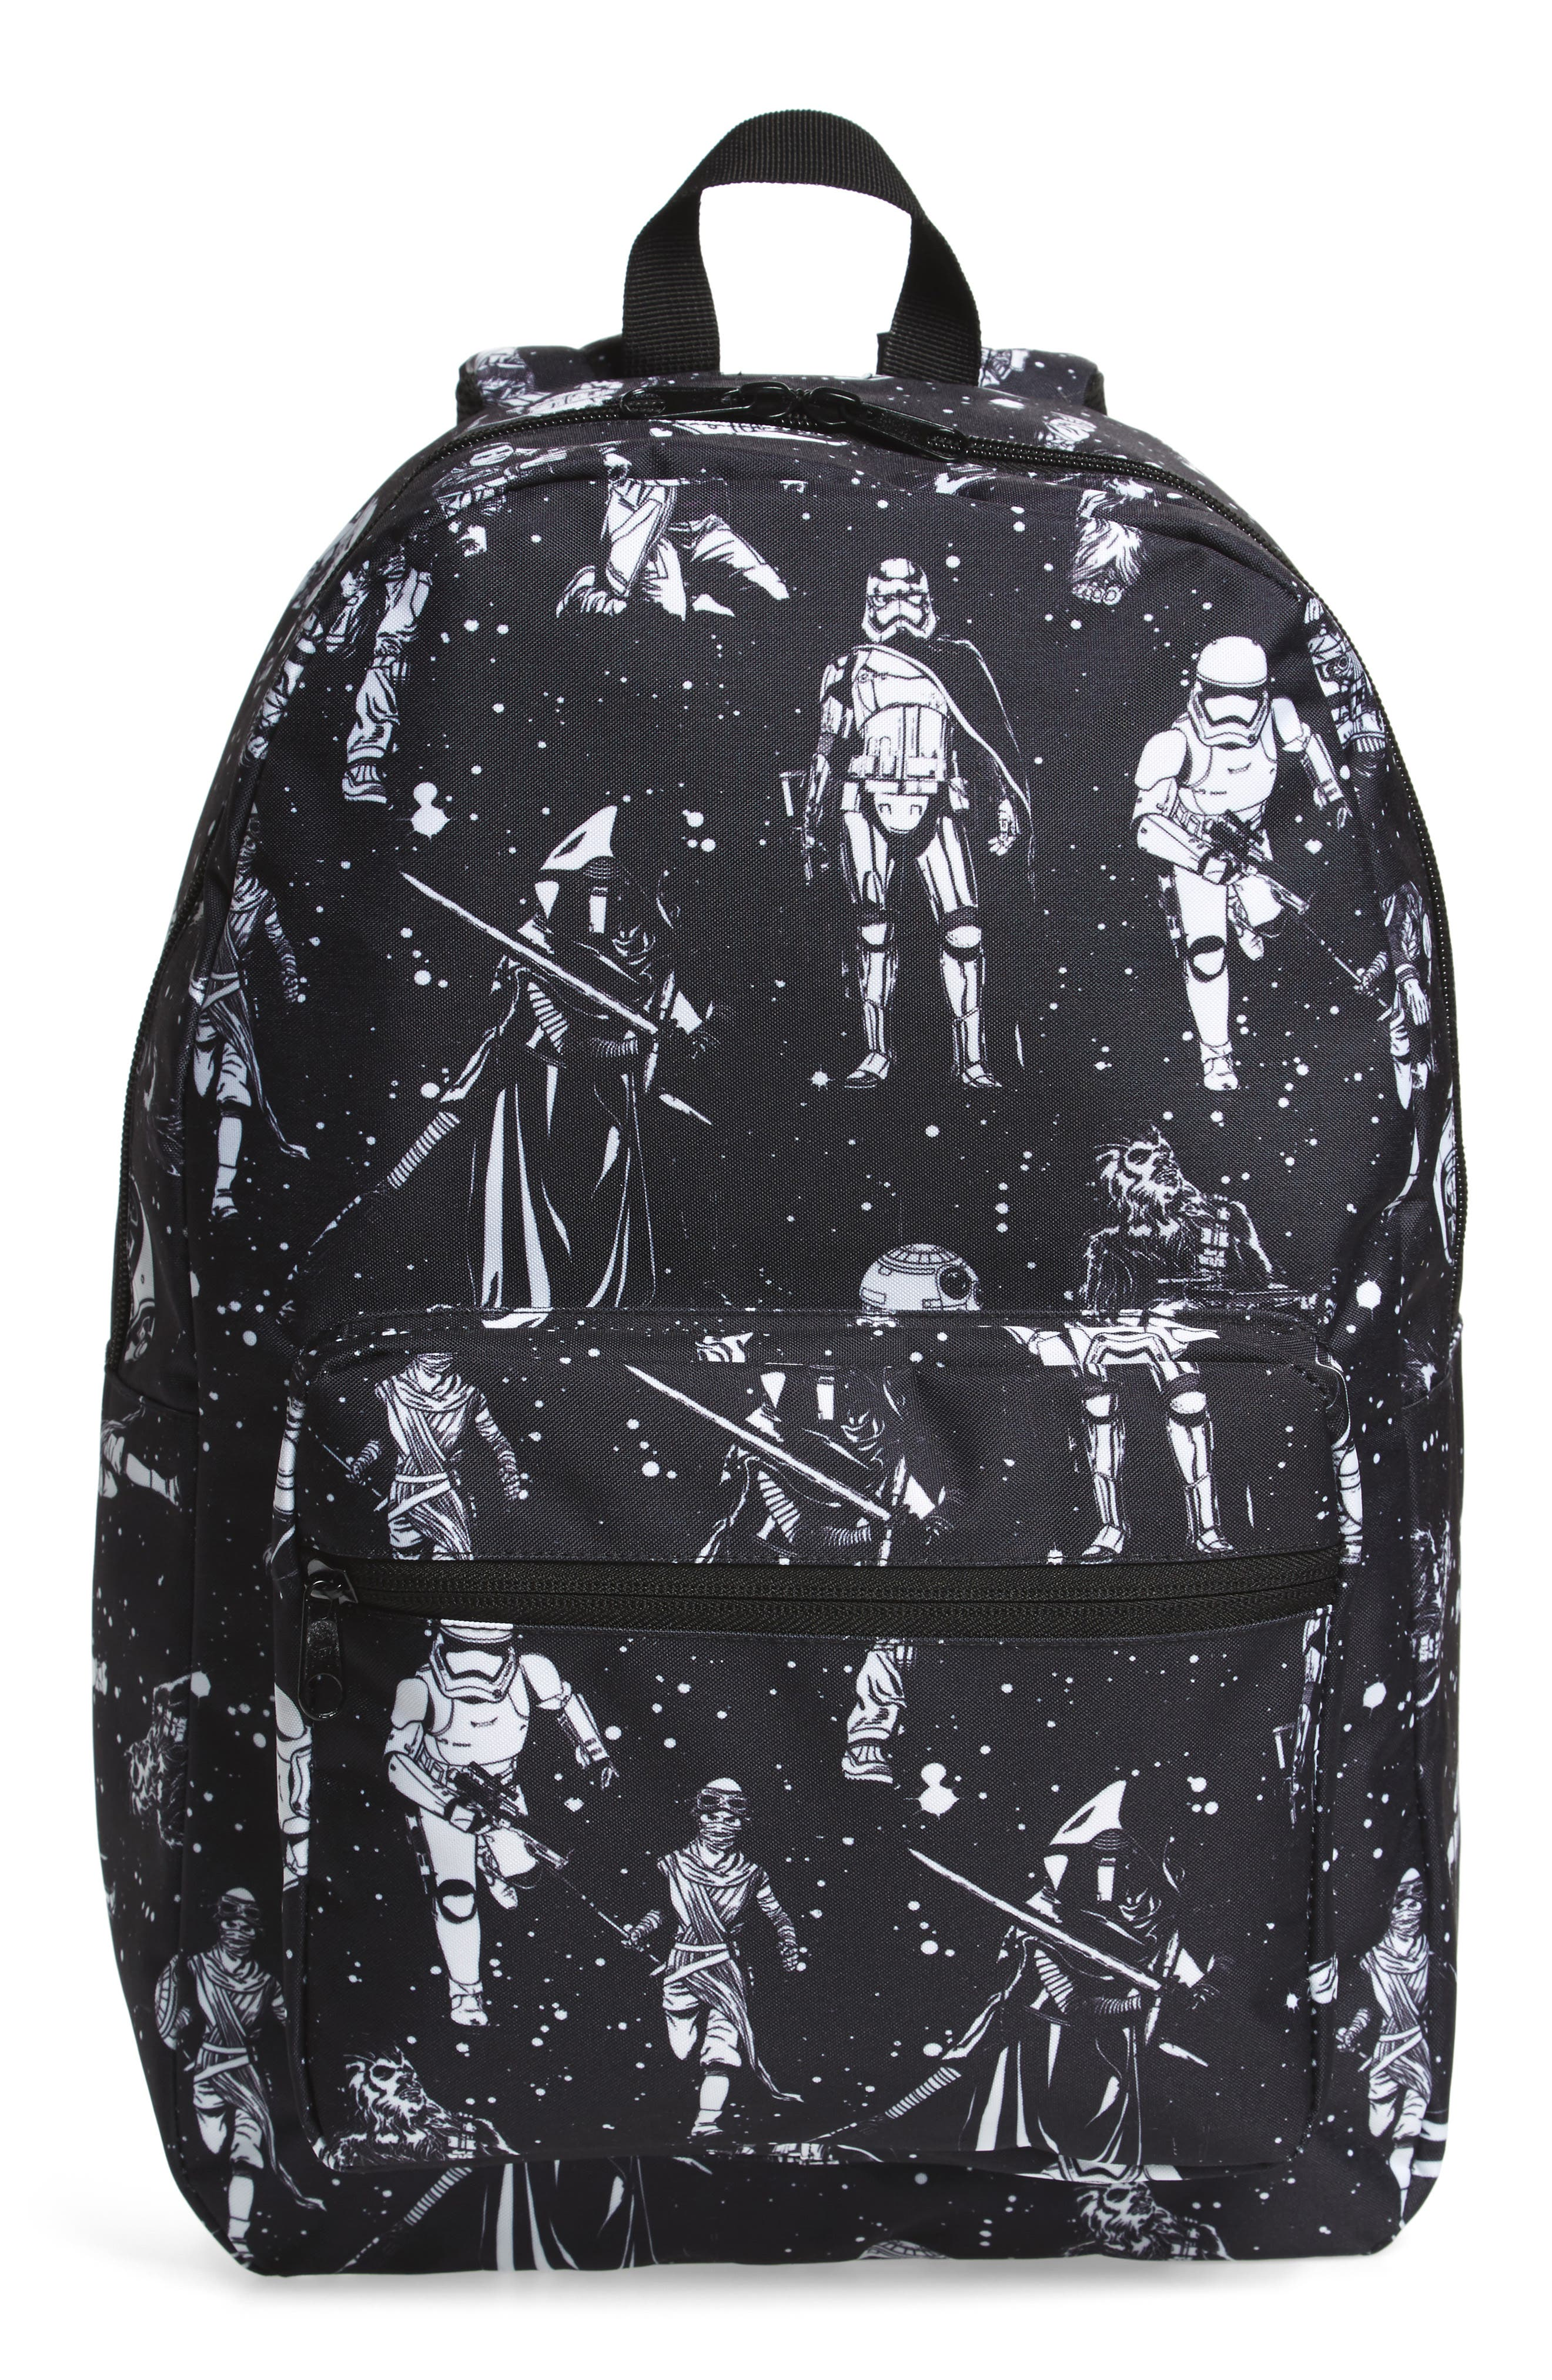 The Force Awakens Black & White Space Backpack,                         Main,                         color, 001